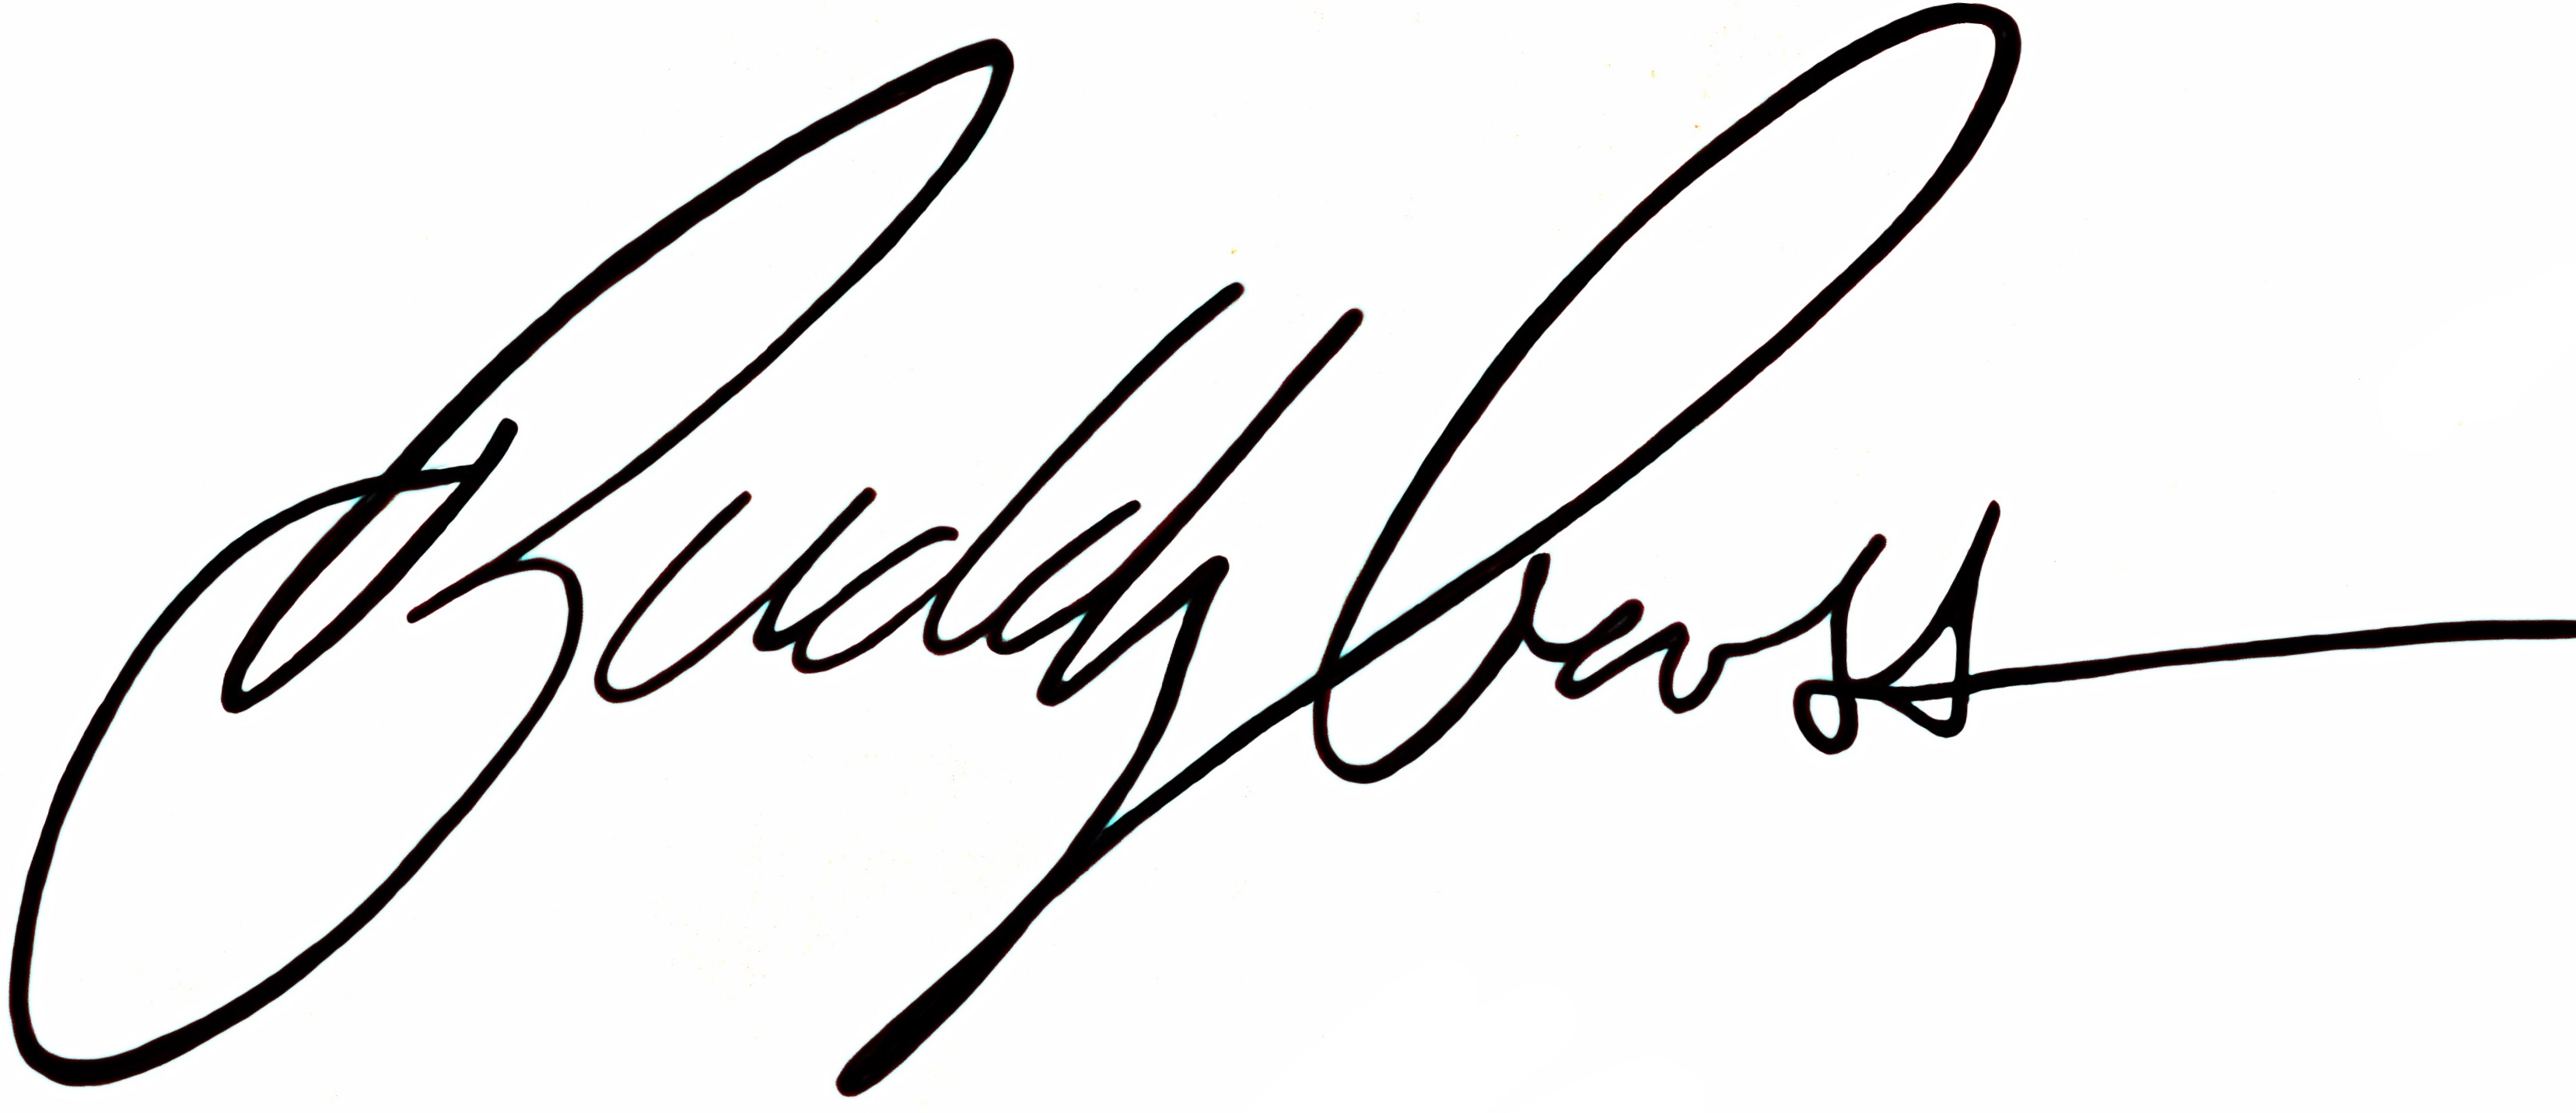 buddy-signature.jpg